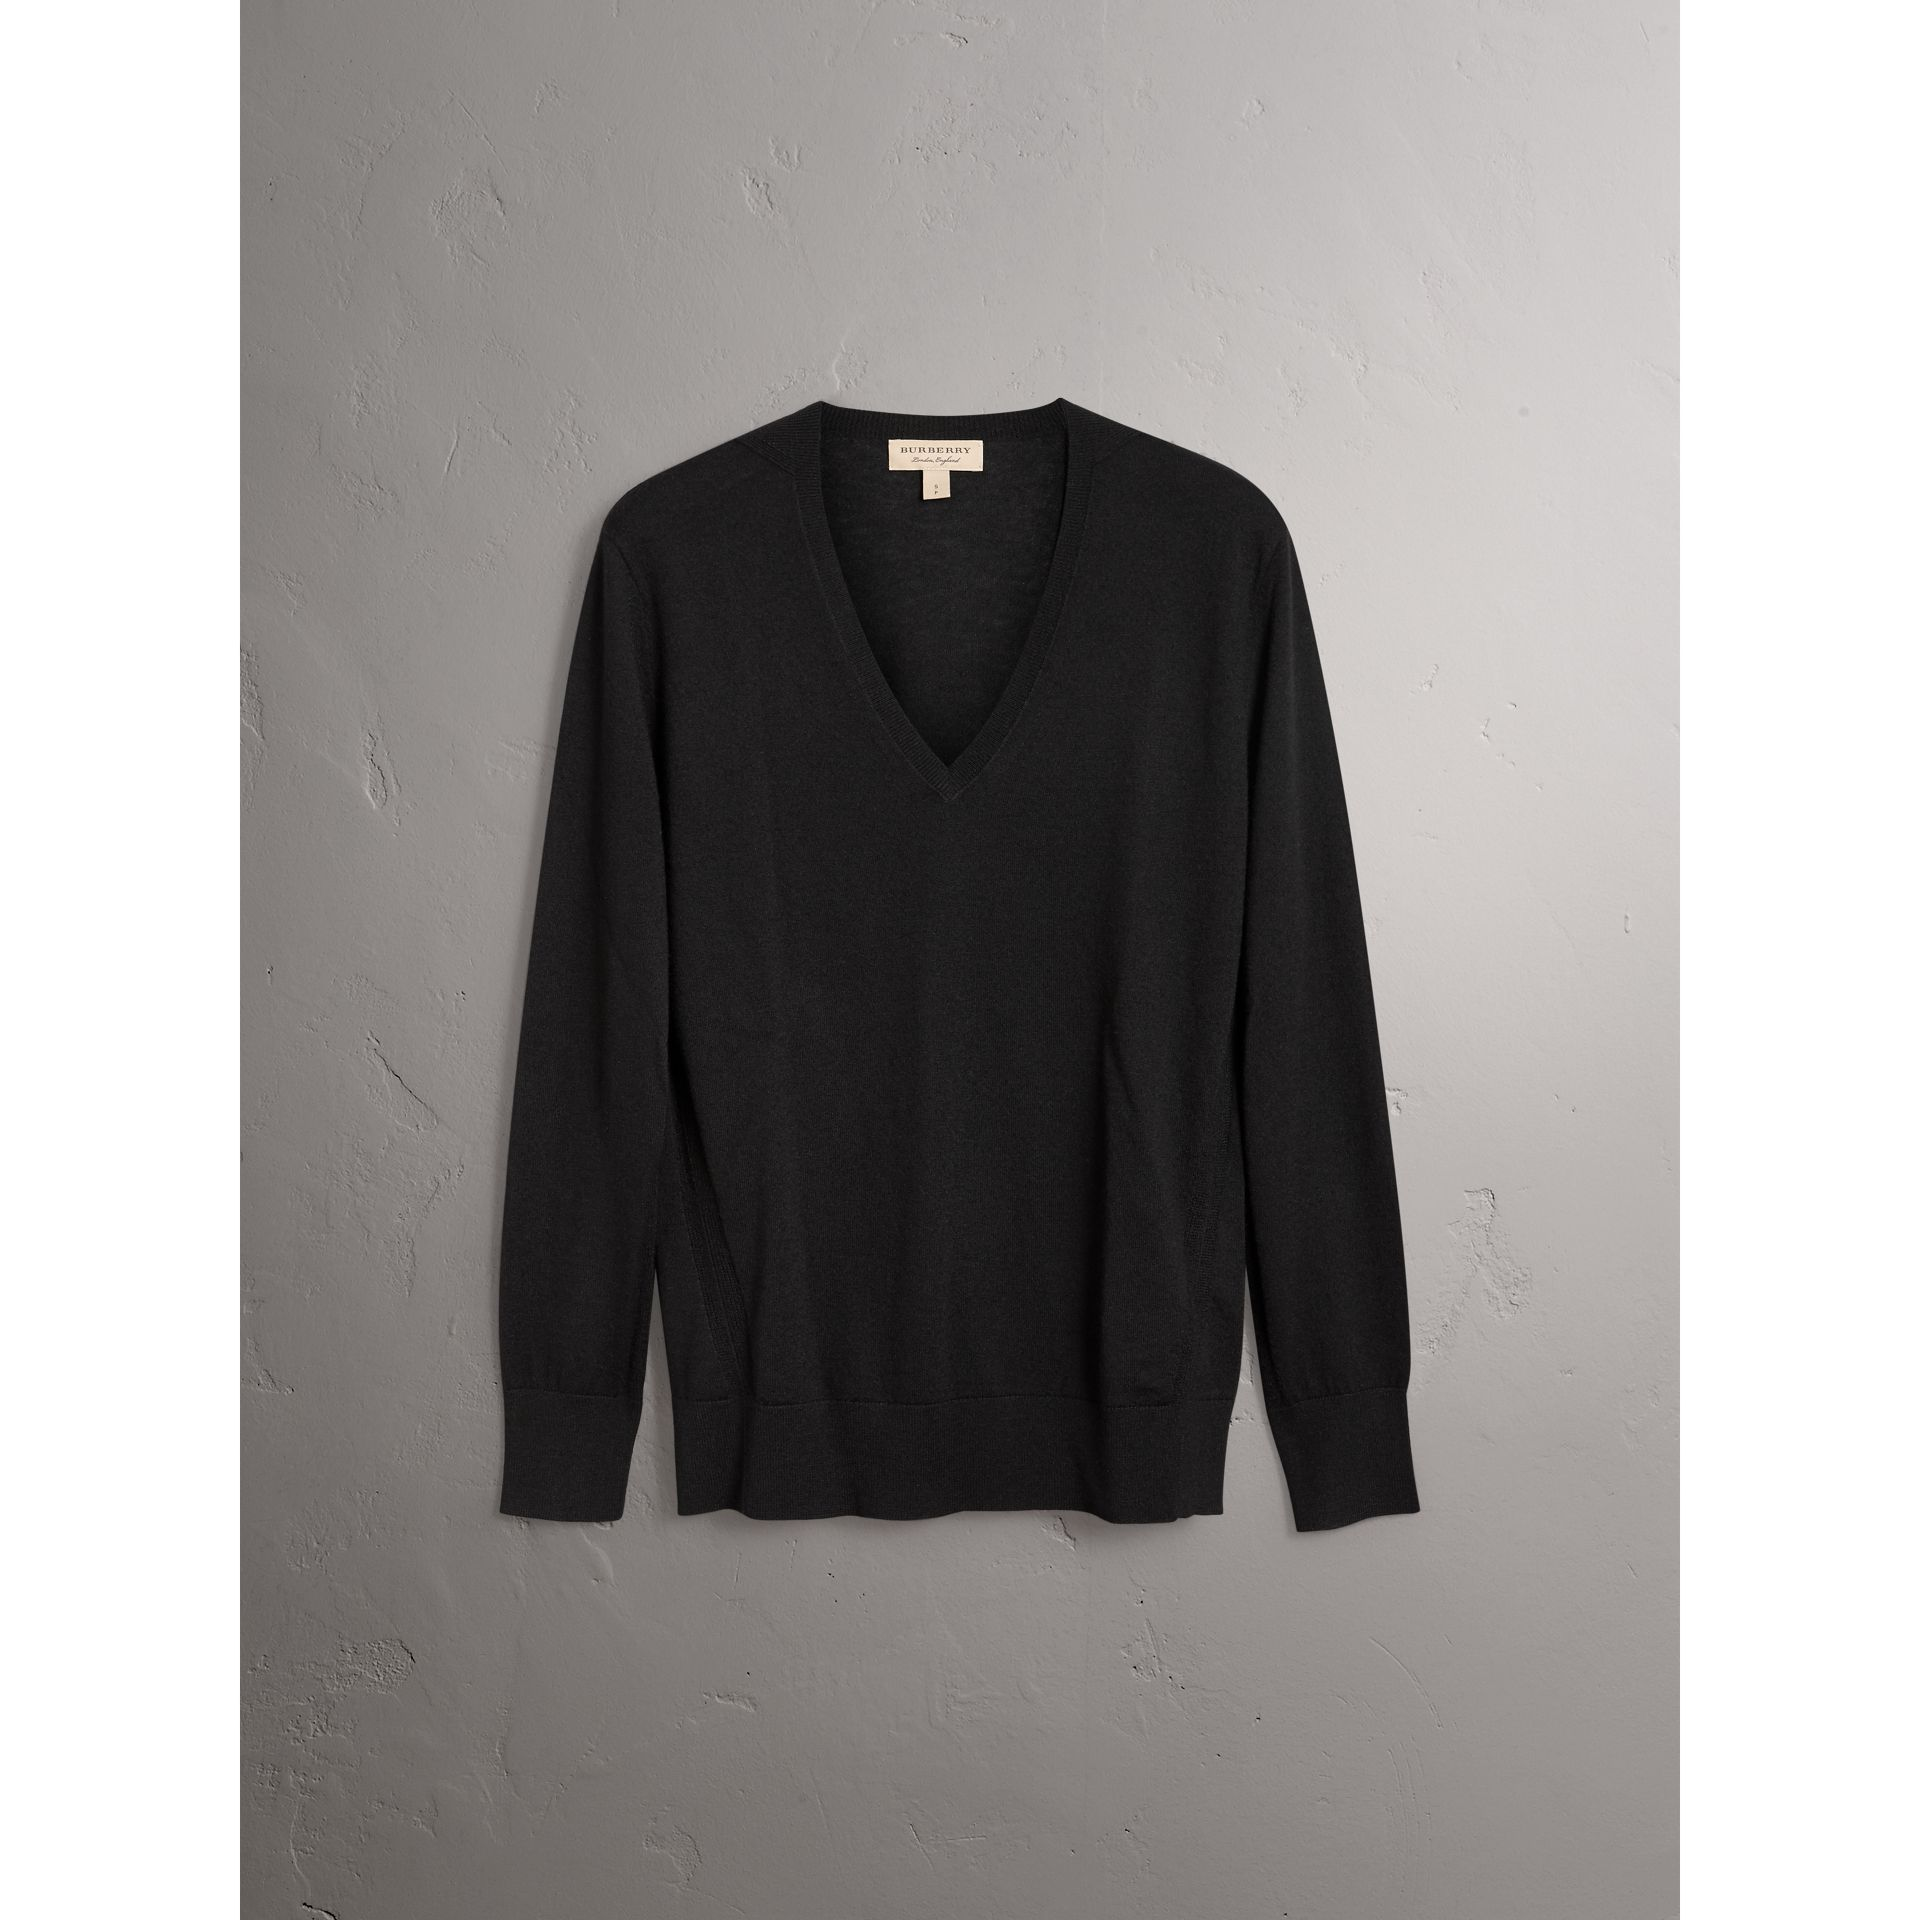 Check Detail Cashmere V-neck Sweater in Black - Women | Burberry - gallery image 4